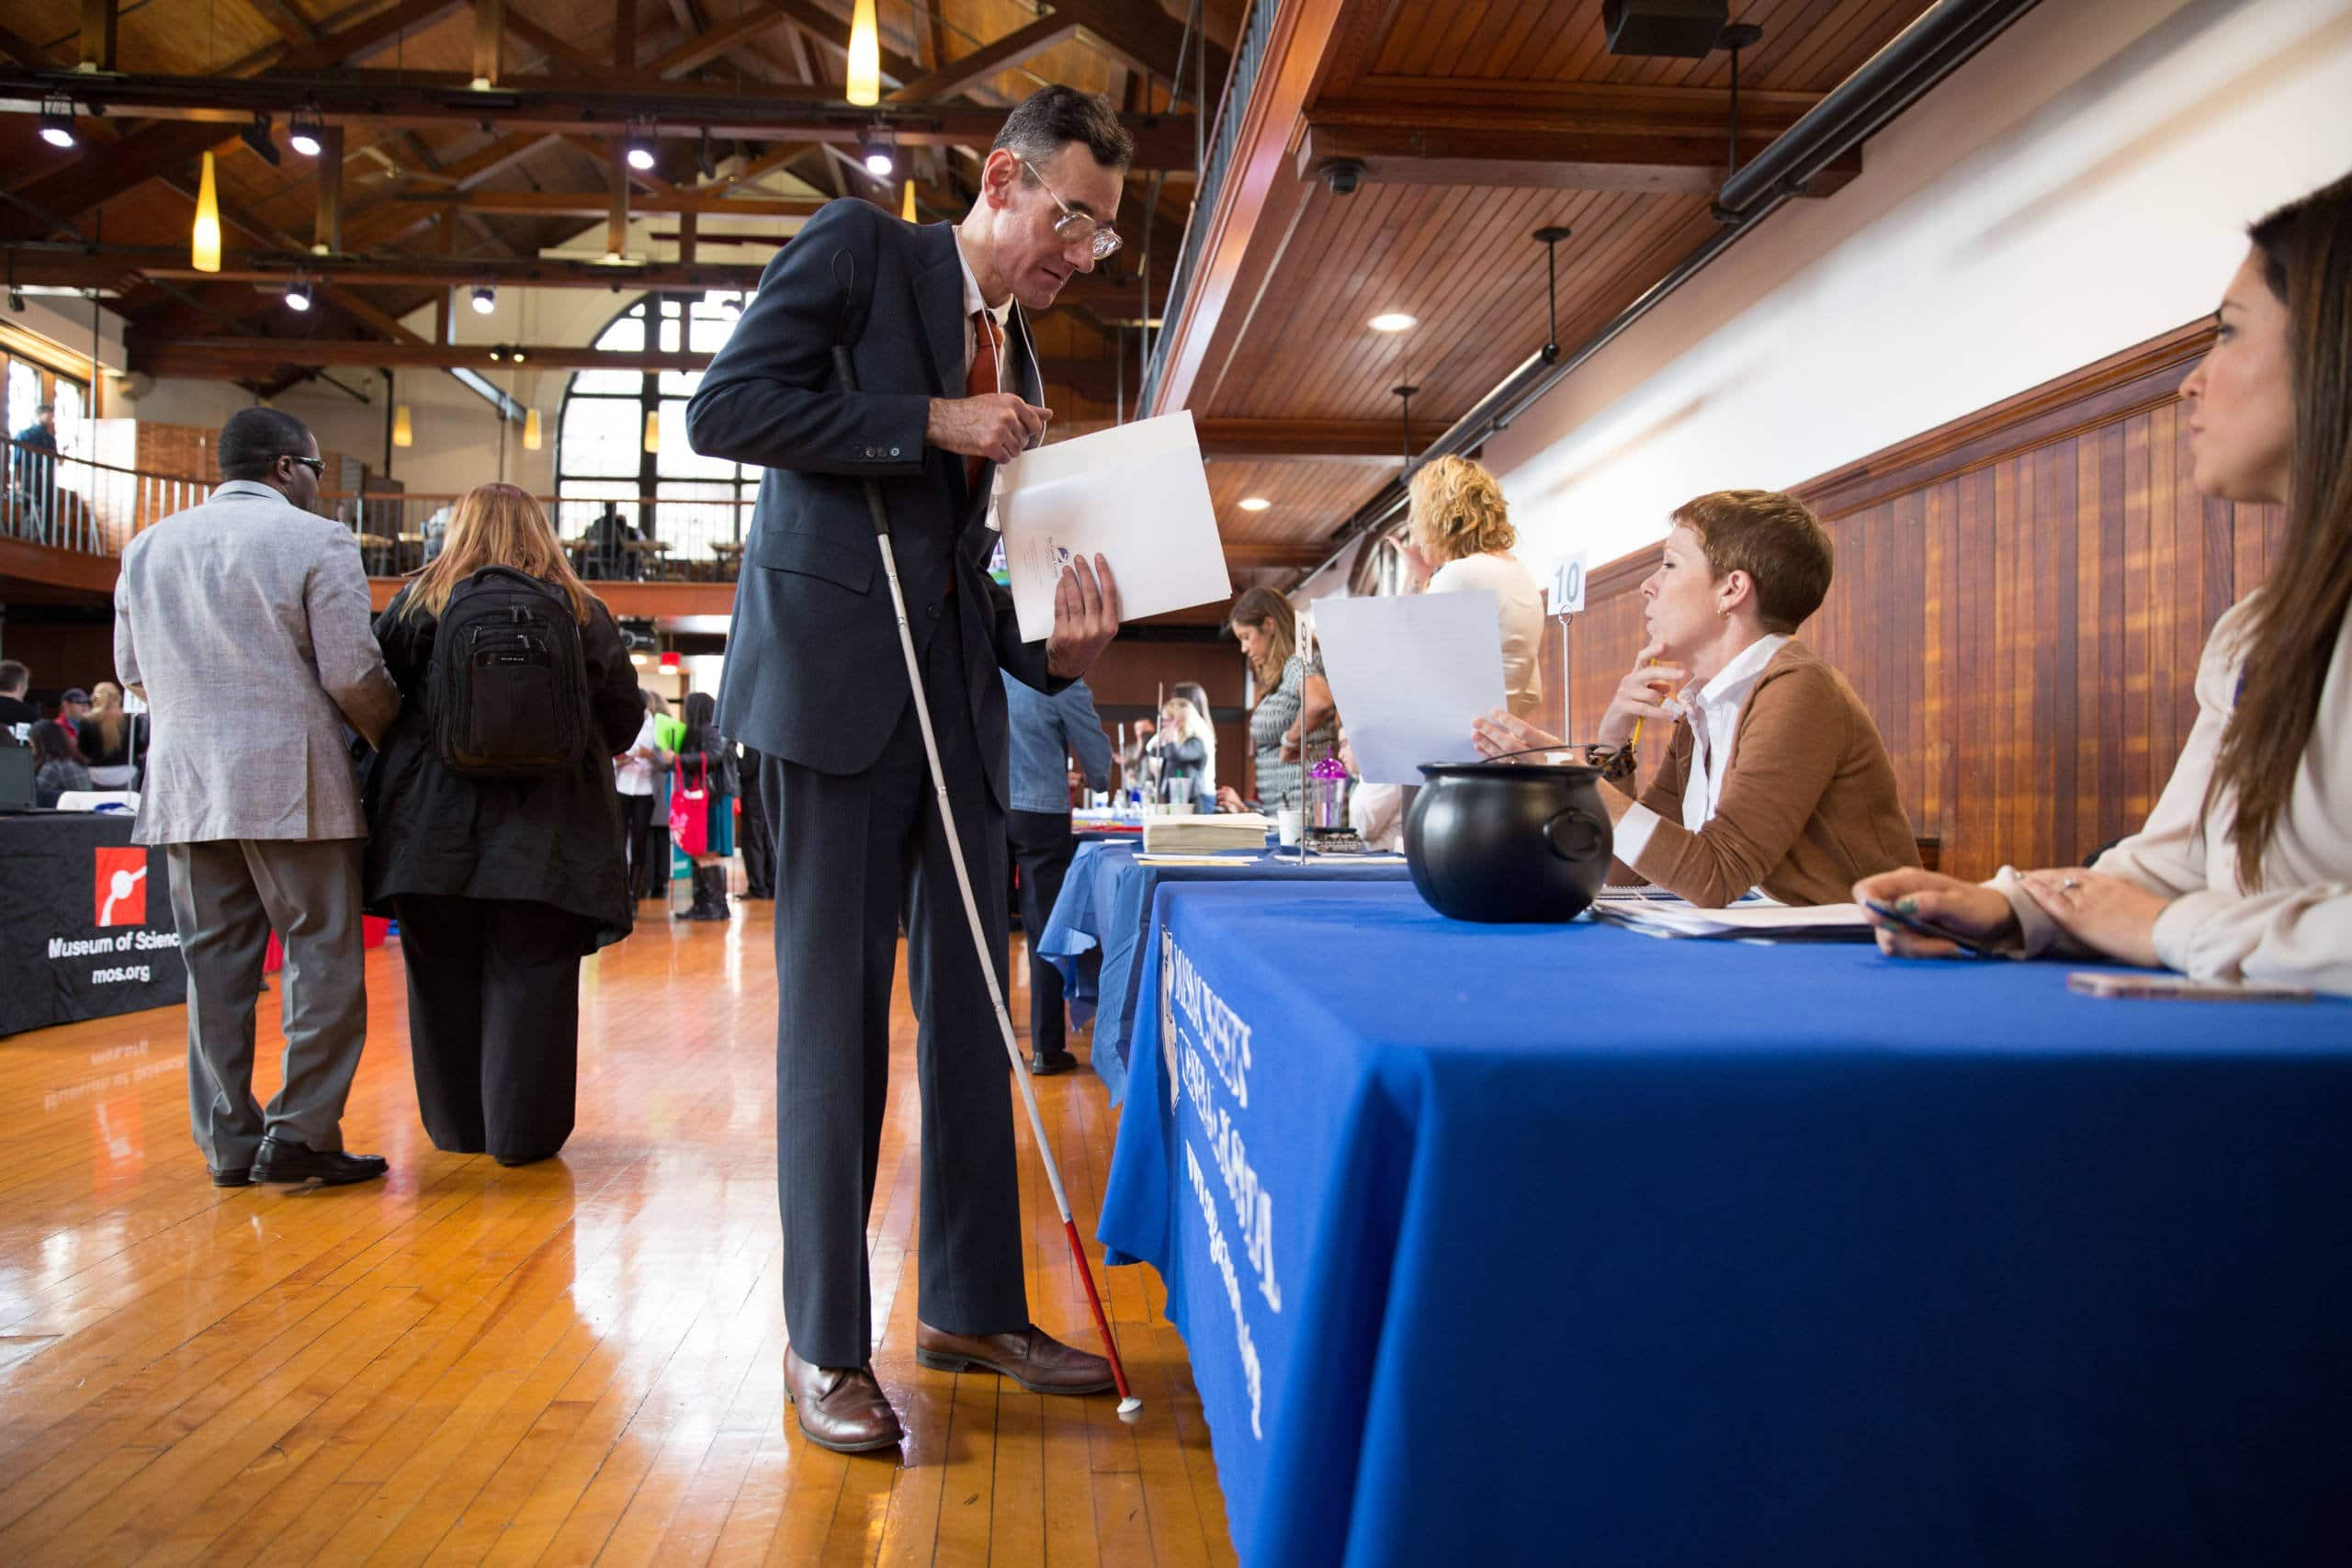 A tall man in a suit using his cane at a career event.